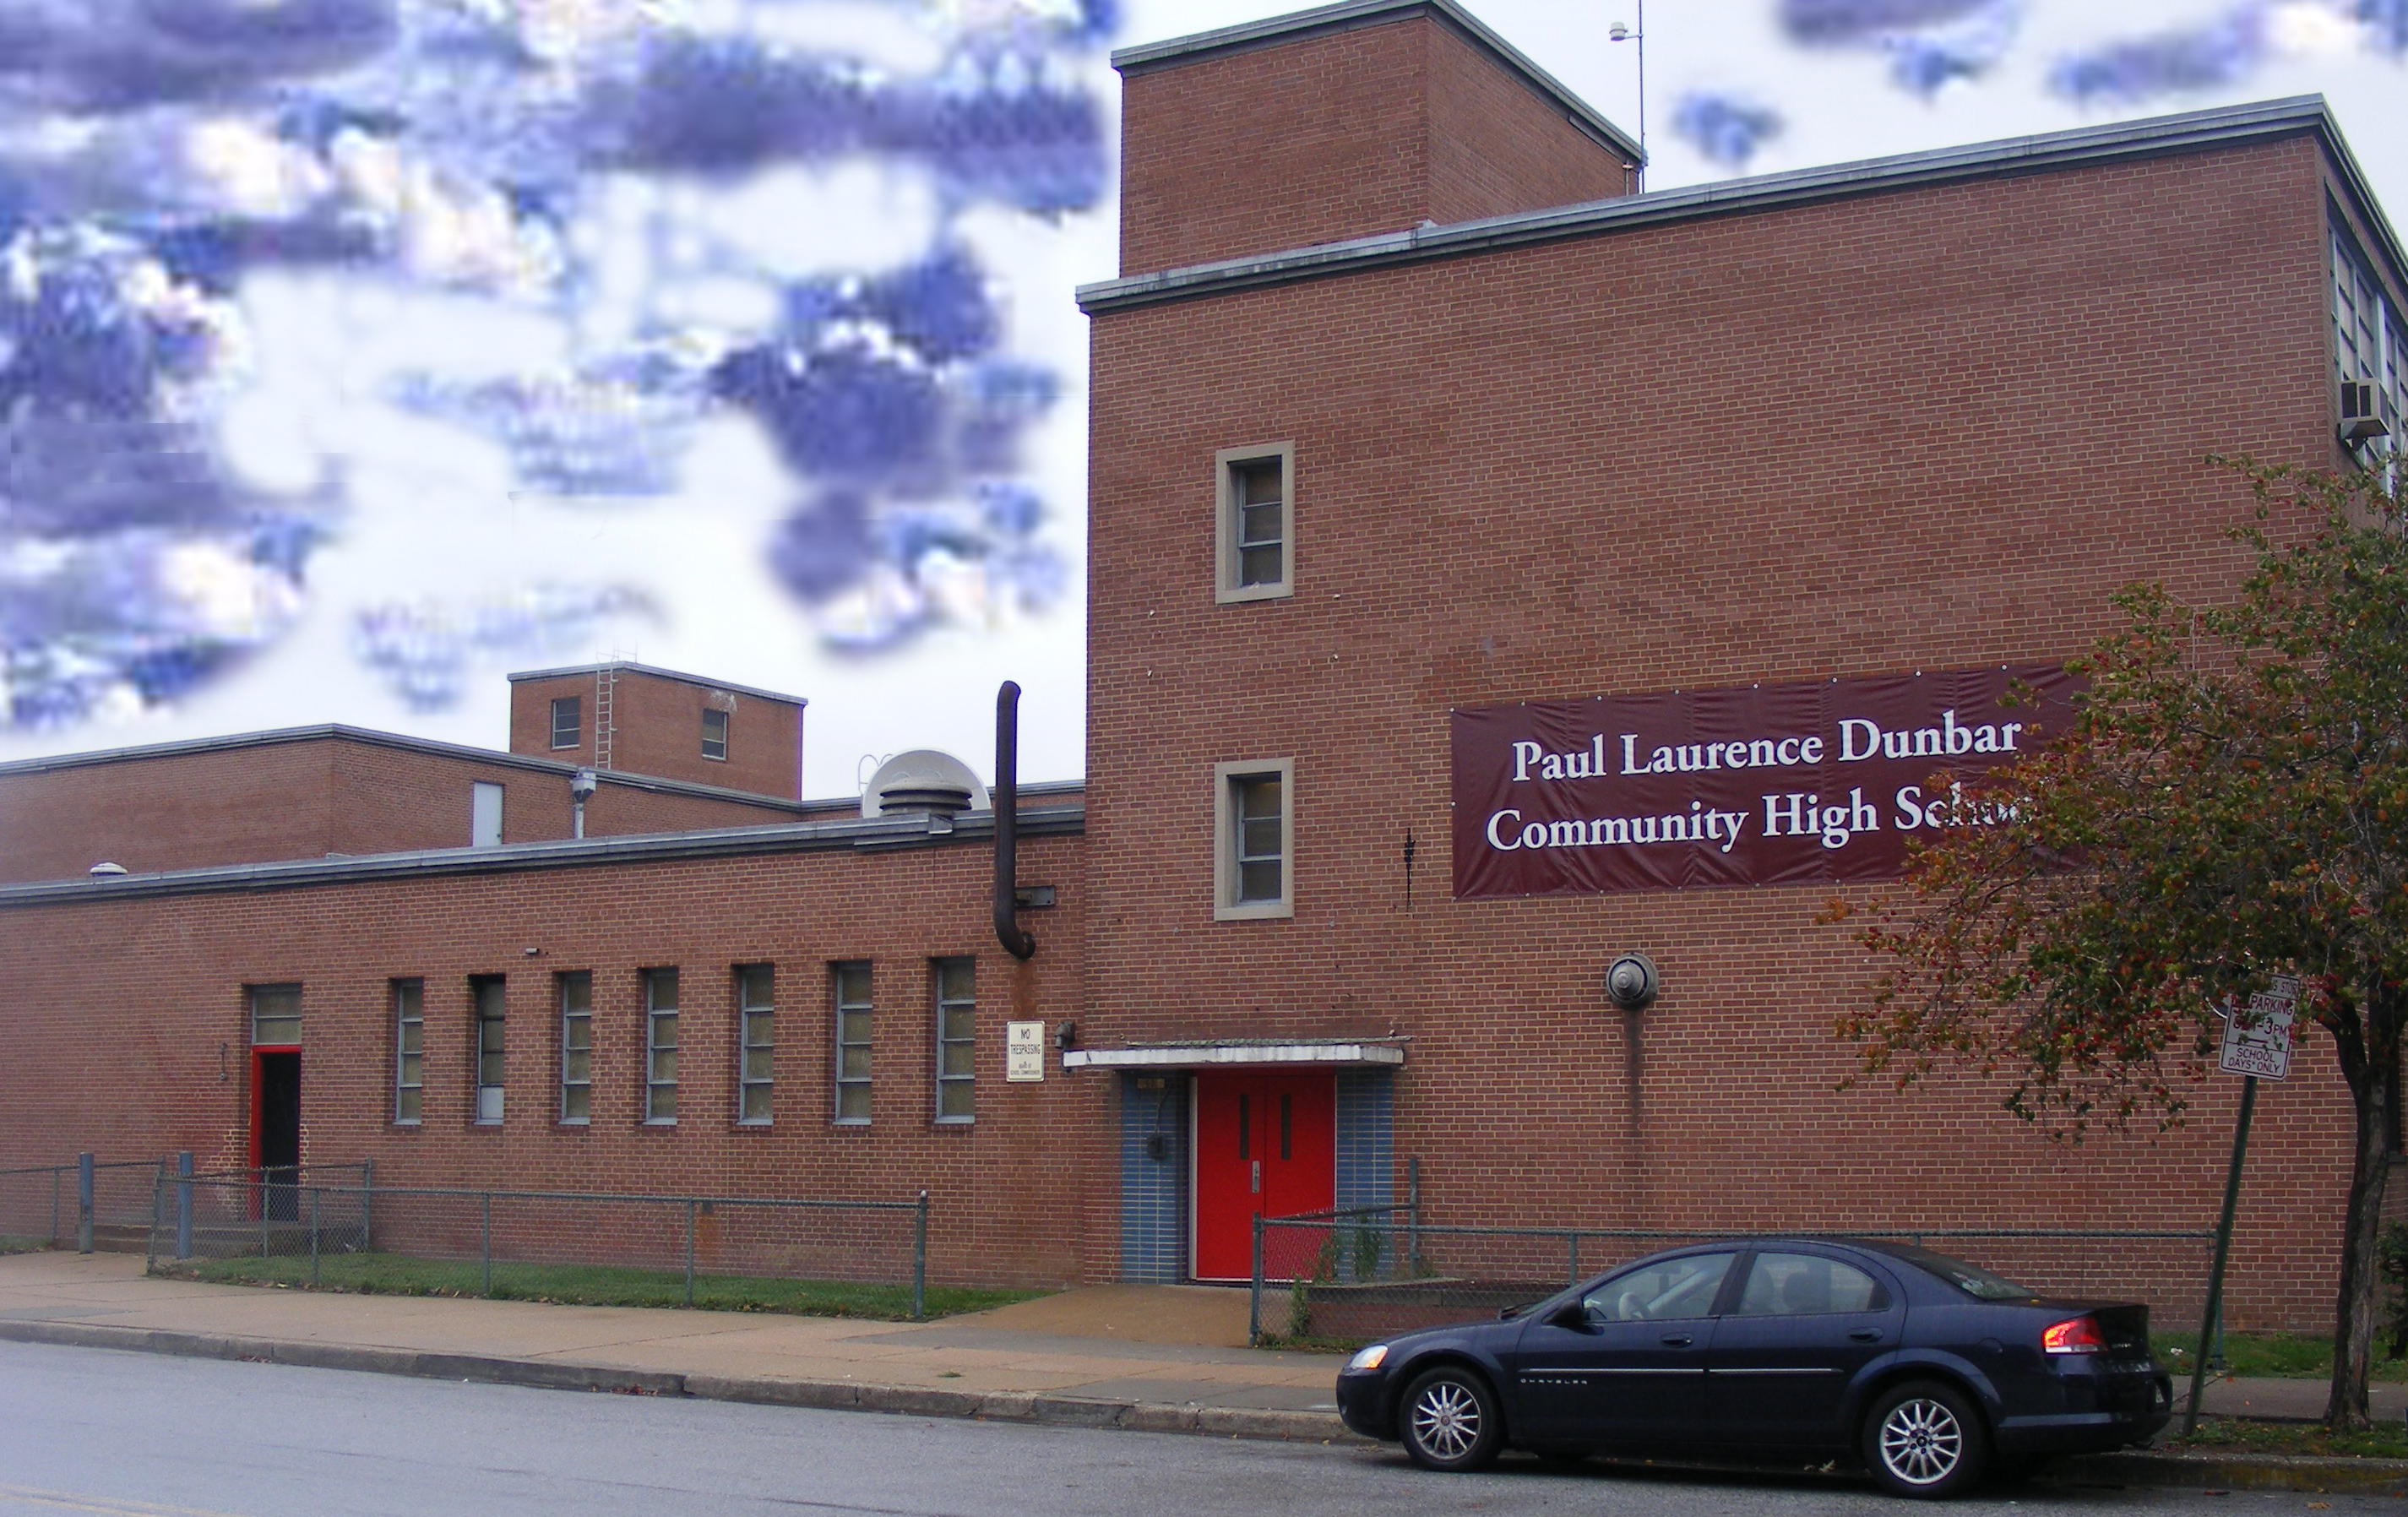 Paul Laurence Dunbar High School (temporary site during 2007 renovations).jpg English: I created this image Date 26 October 2007 (original upload